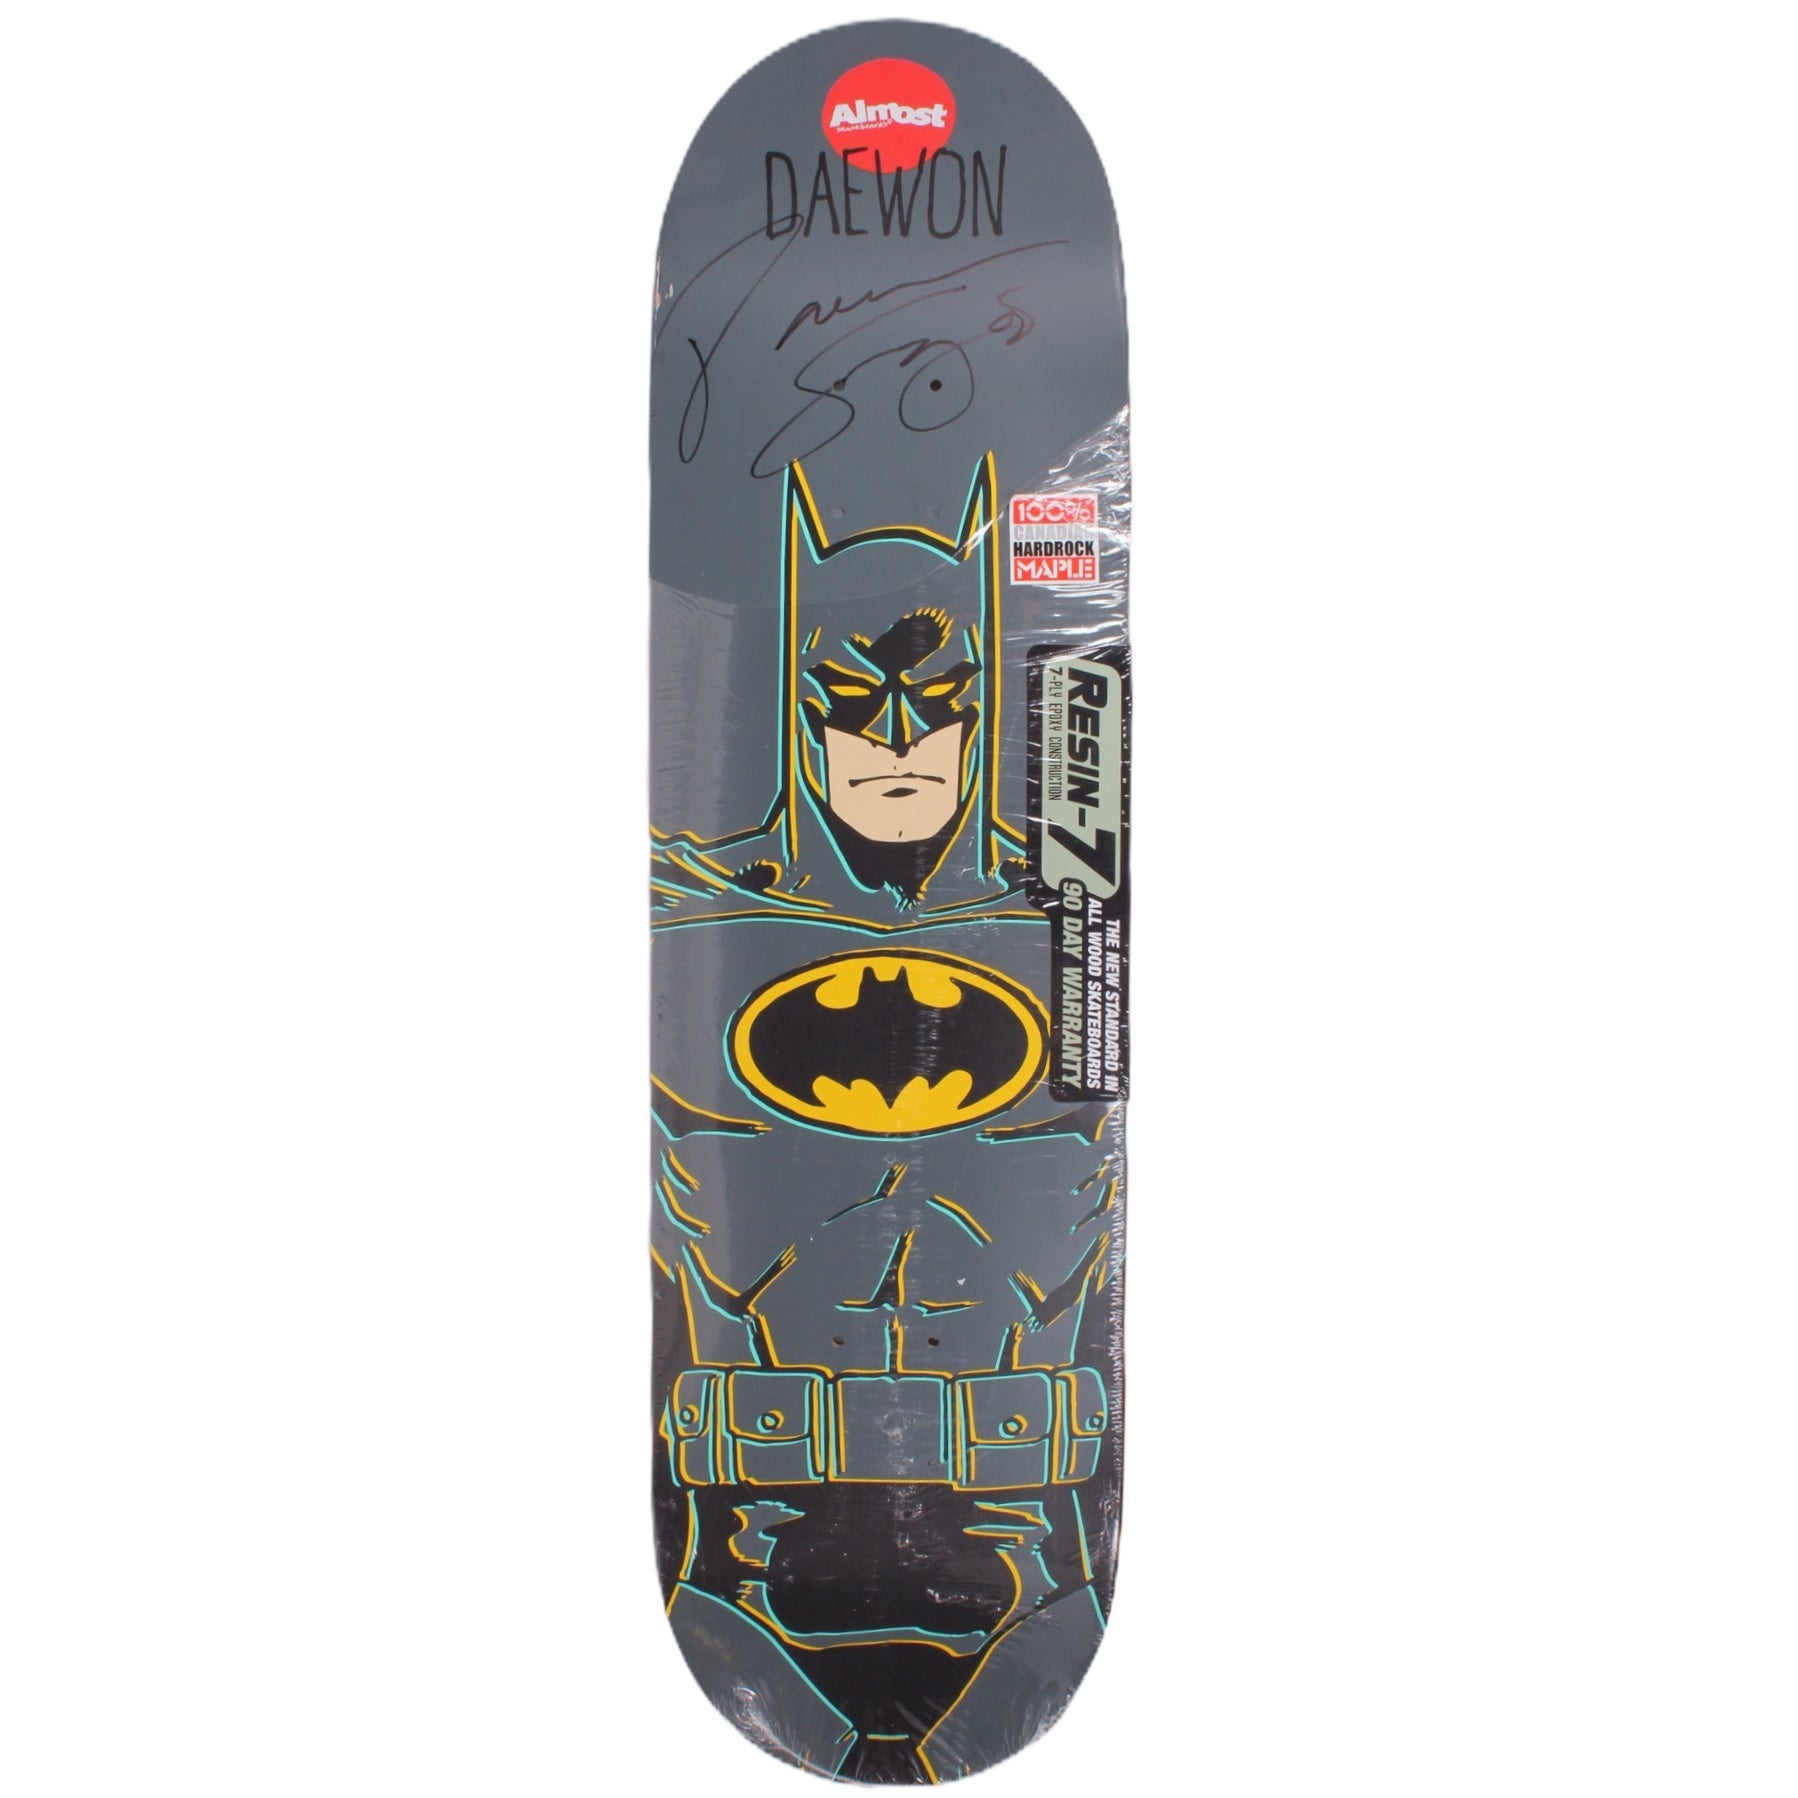 Overripe Almost Signed Deck Daewon Batman 2016